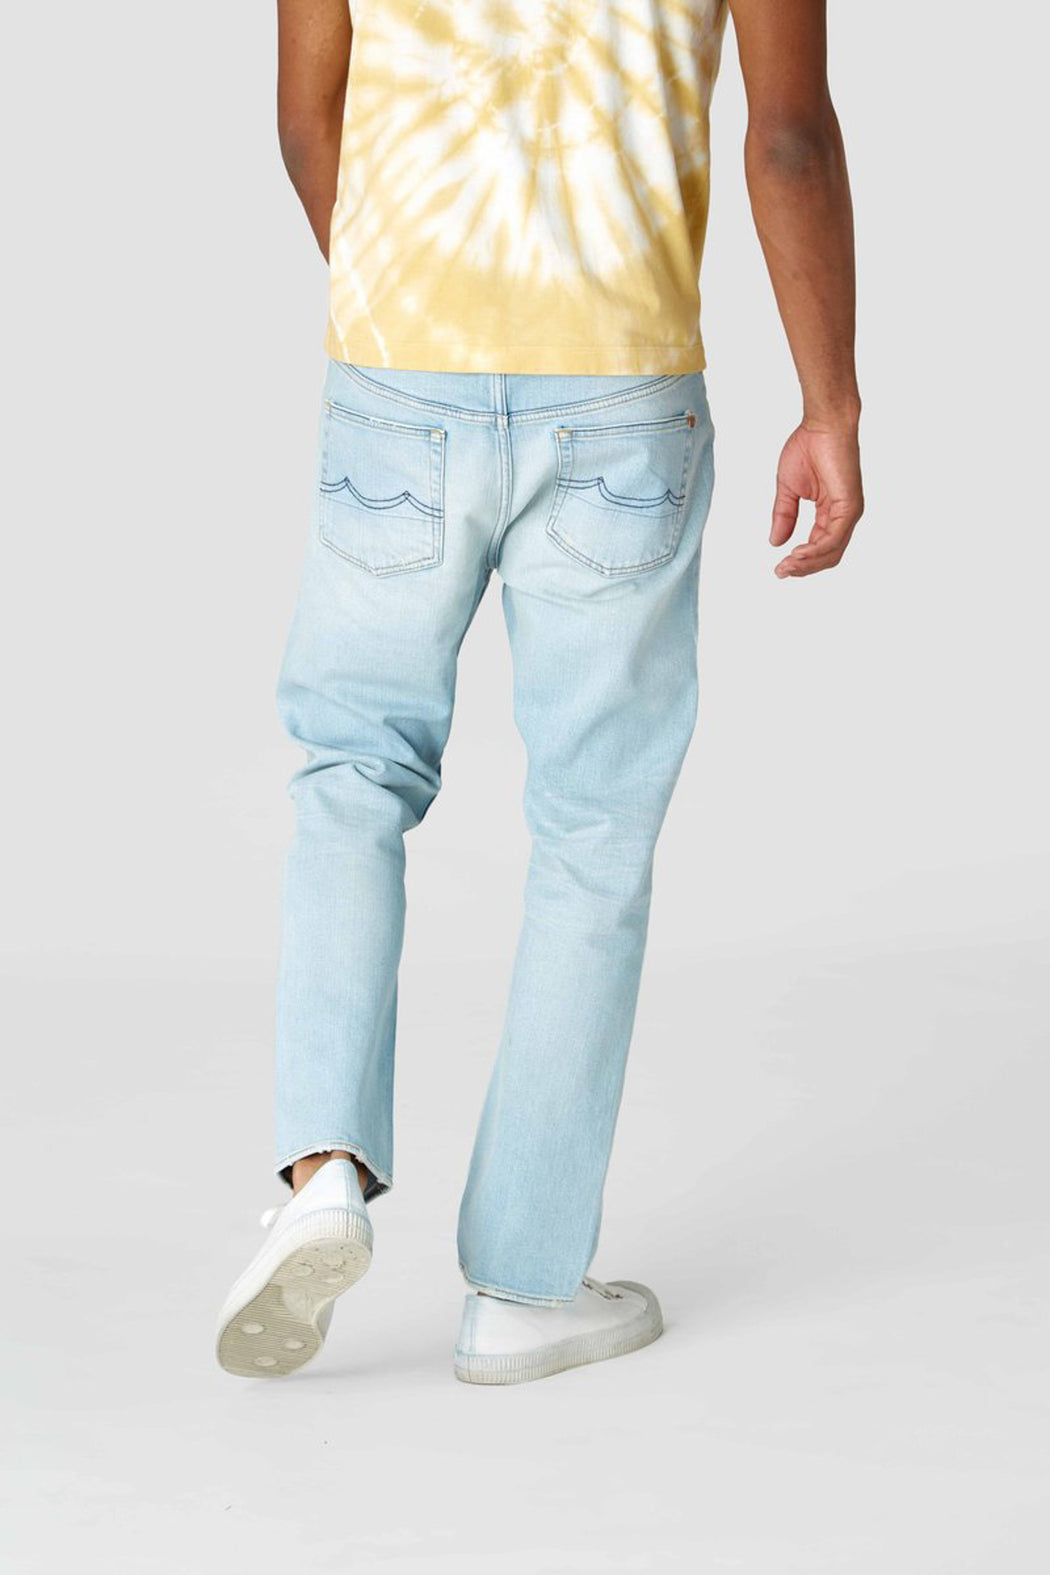 DANIEL Jeans ronald super light coolmax